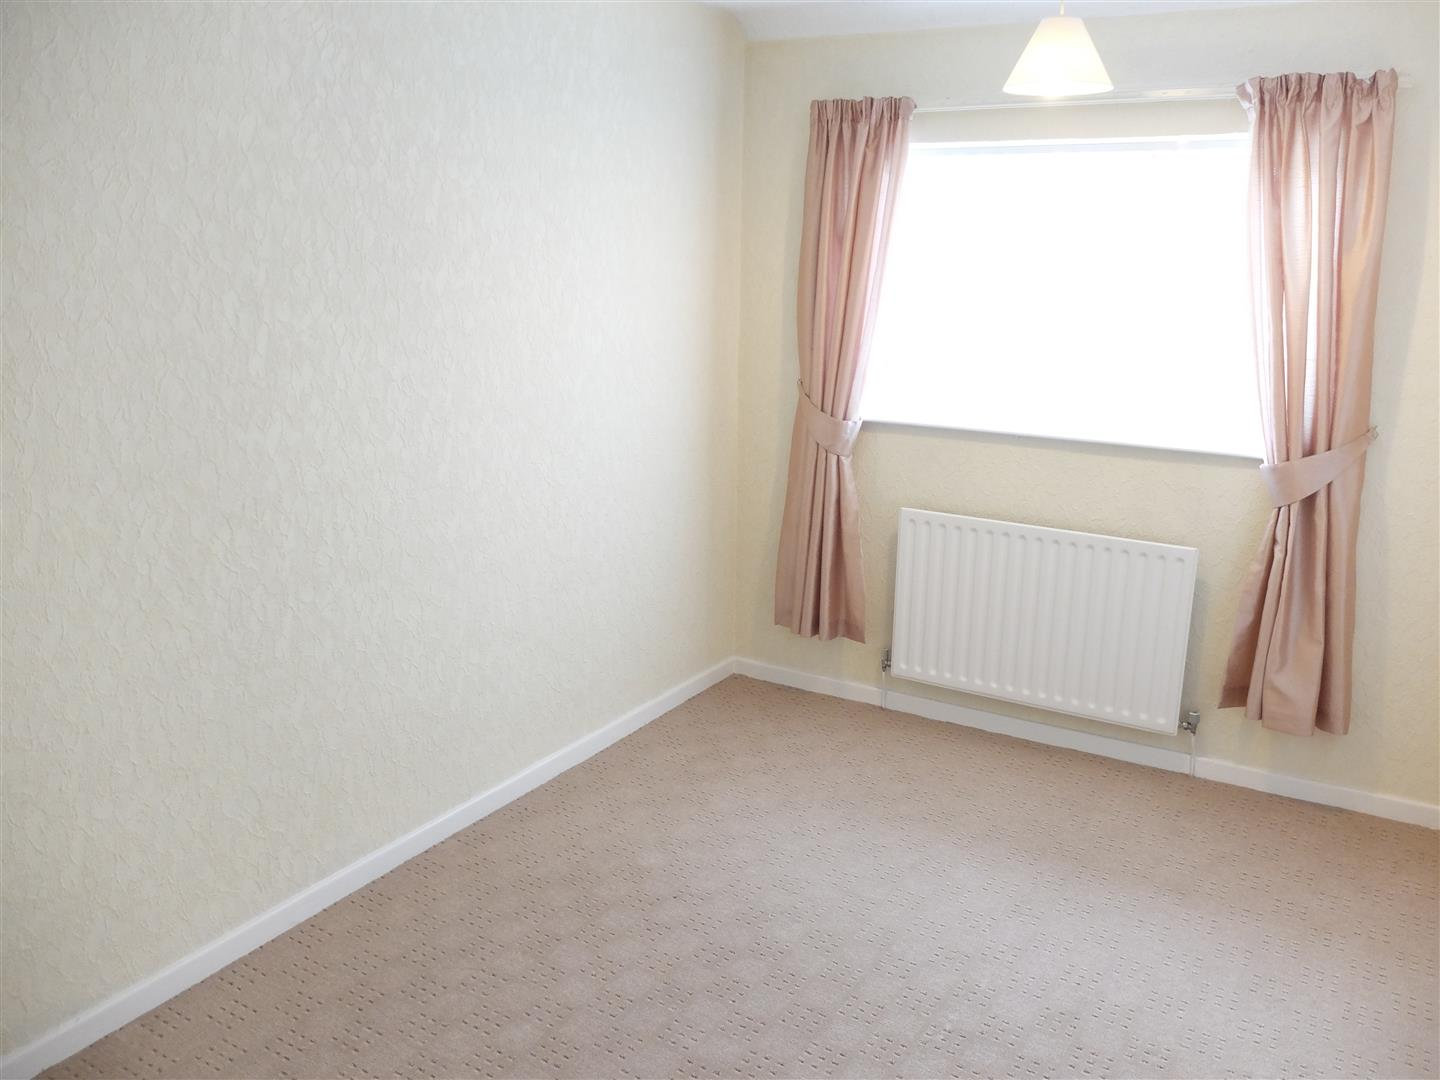 79 Westrigg Road Carlisle 3 Bedrooms House - Mid Terrace On Sale 110,000